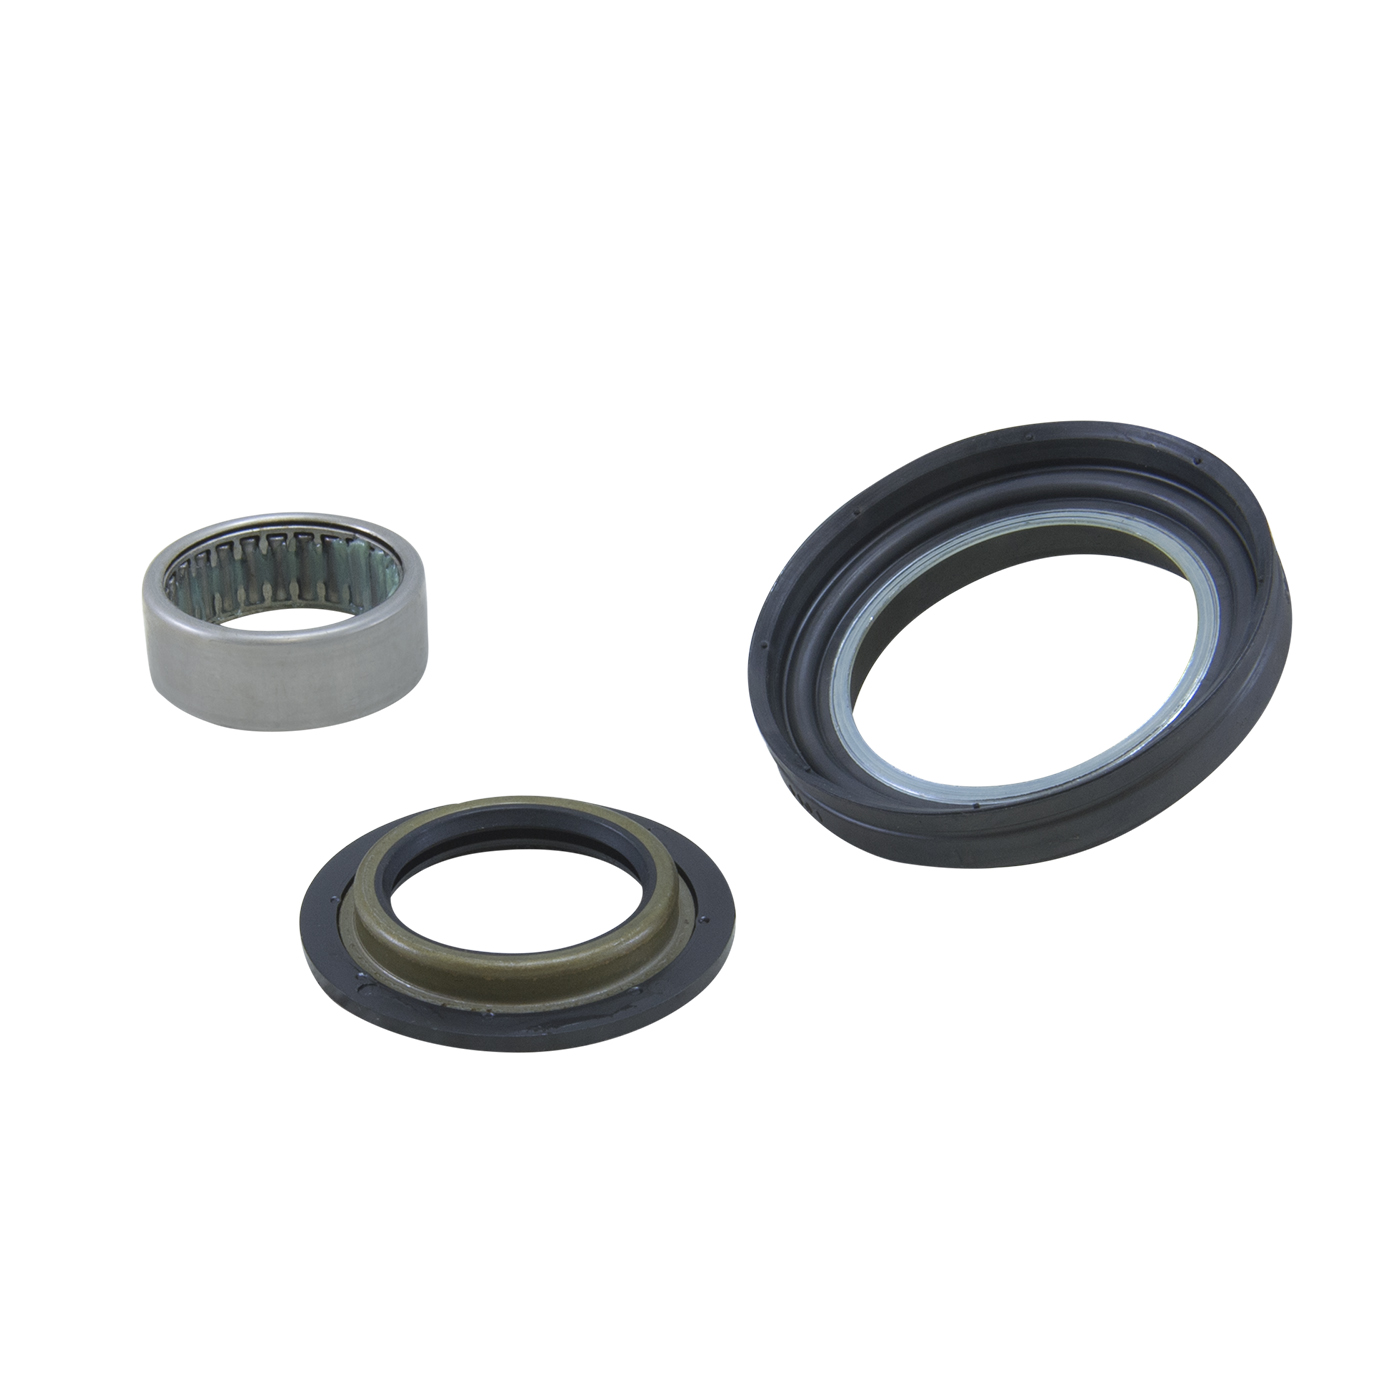 YSPSP-029 - Spindle bearing & seal kit for 1993-1996 Ford Dana28, Model 35 IFS & Dana 44 IFS